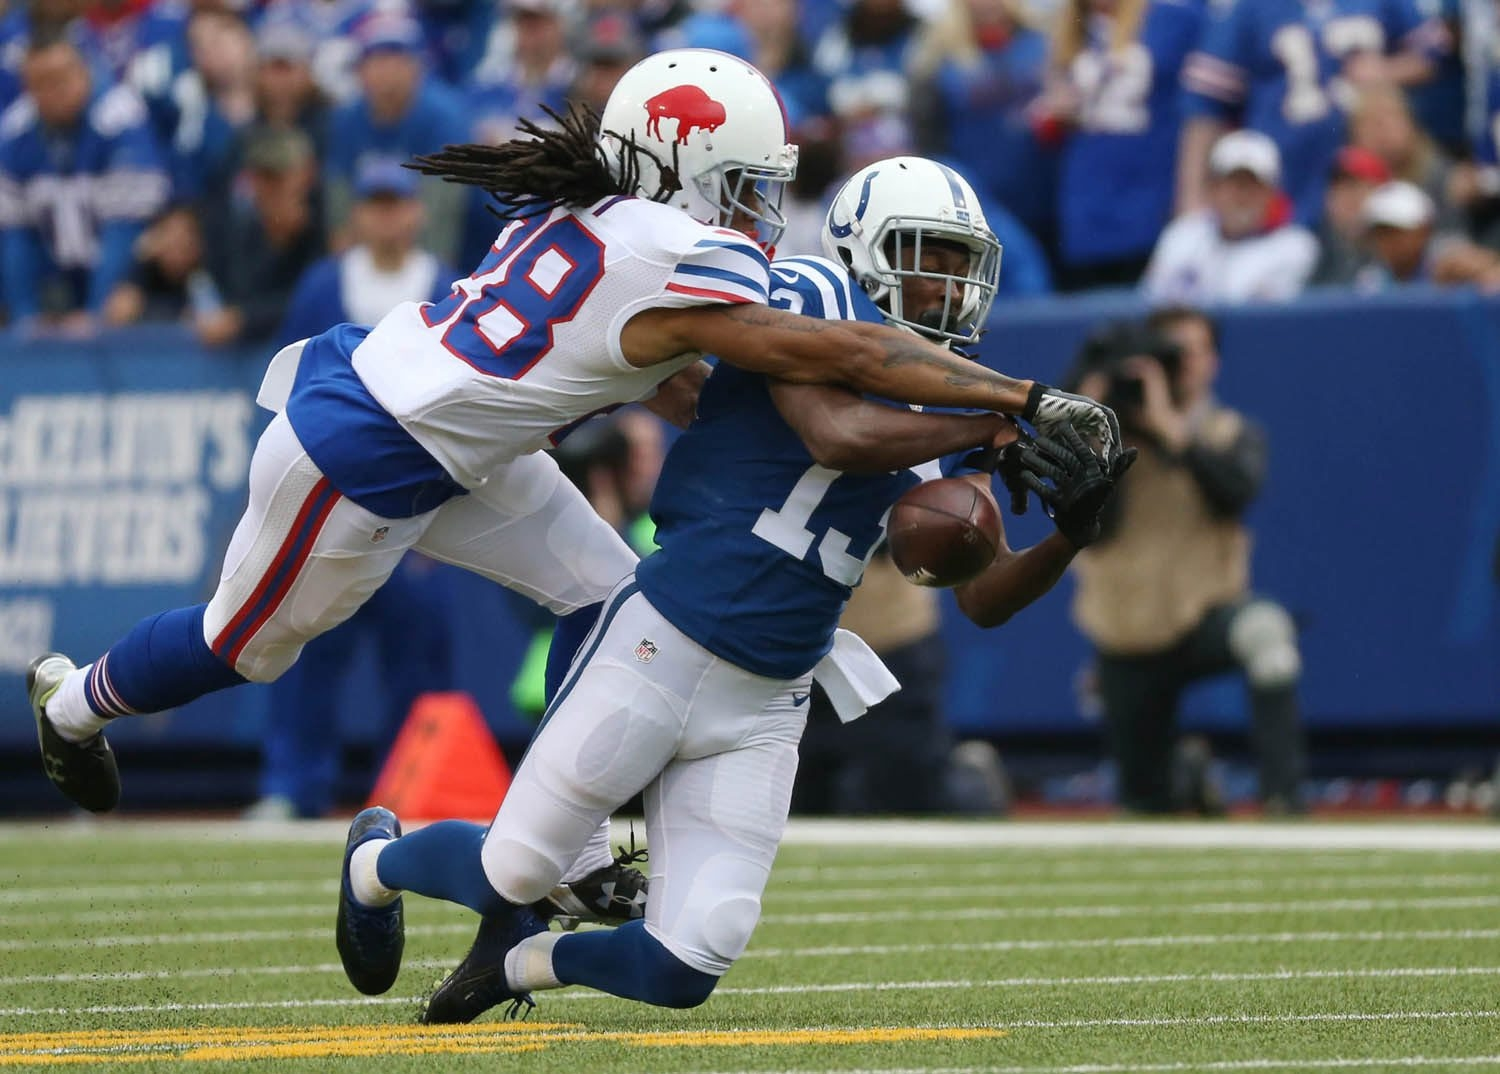 Bills cornerback Ronald Darby emerged after a poor preseason to become a rock at defensive back despite the challenge of single coverage.